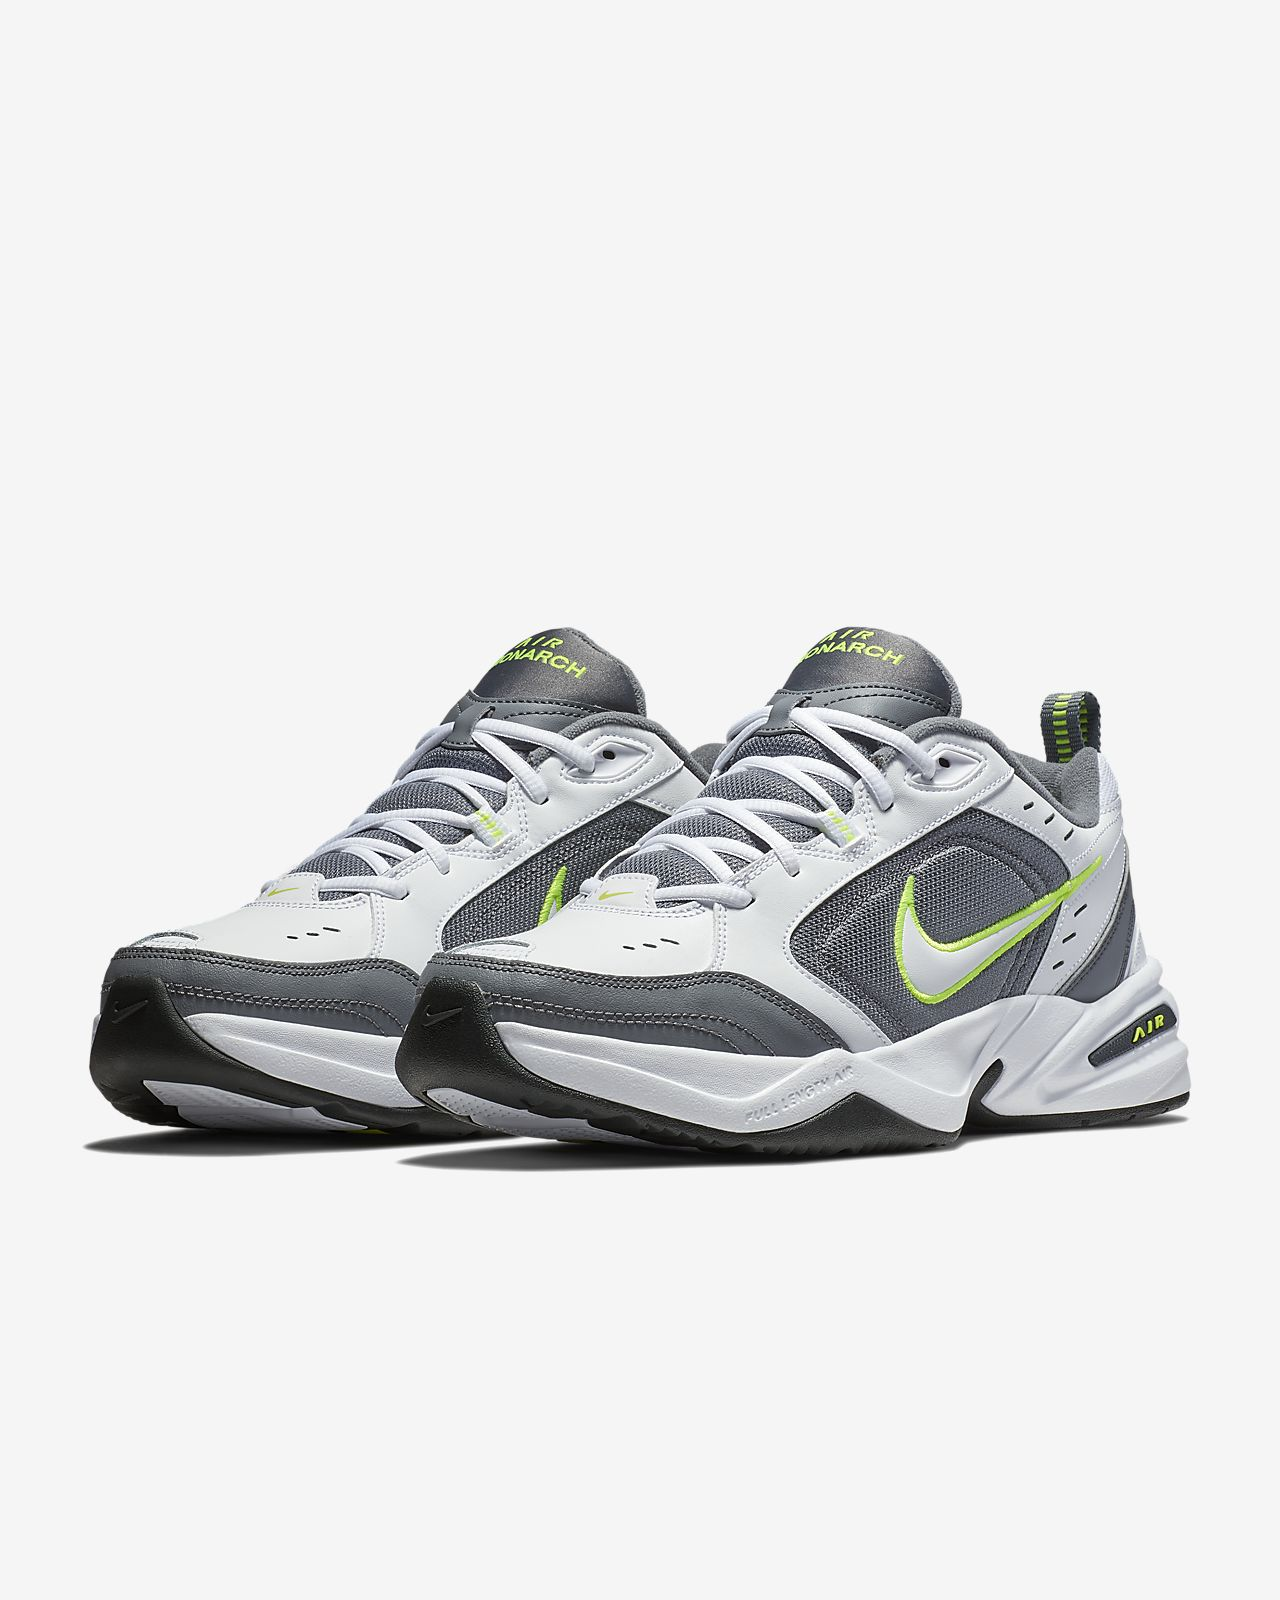 free shipping d1ae9 8c6de ... Nike Air Monarch IV Lifestyle Gym Shoe